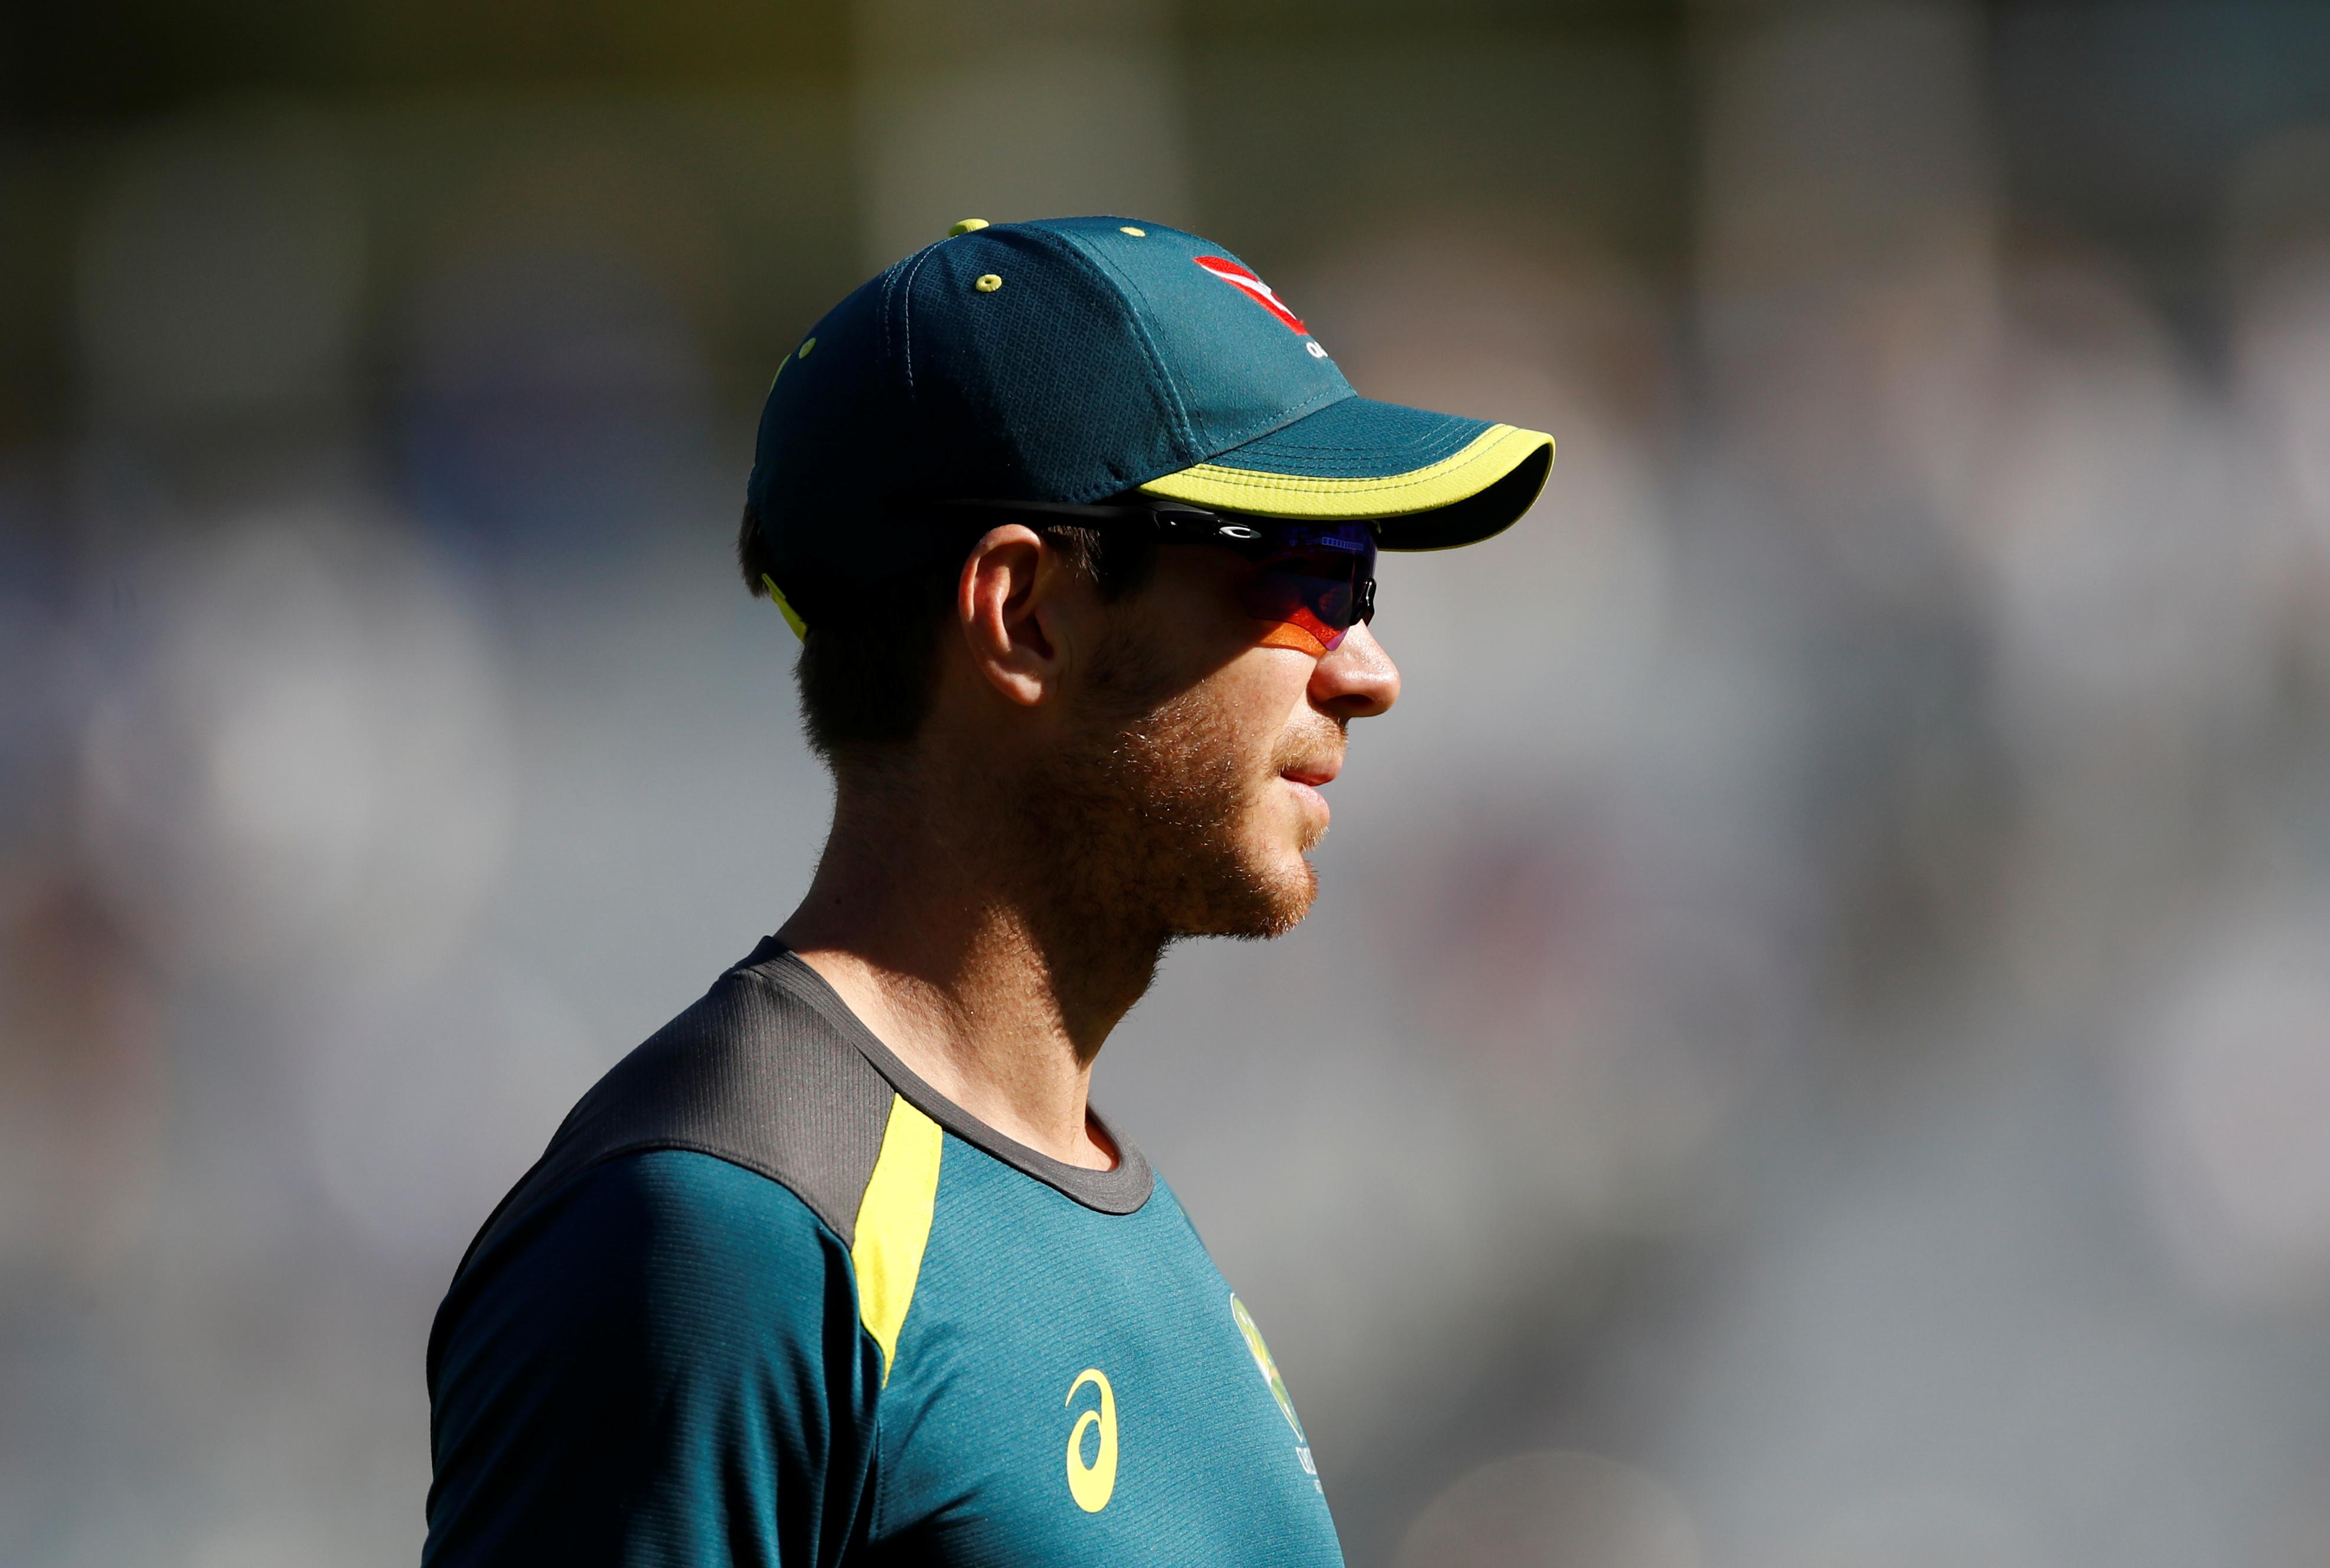 Australia need to support Smith more in Pakistan series - Paine